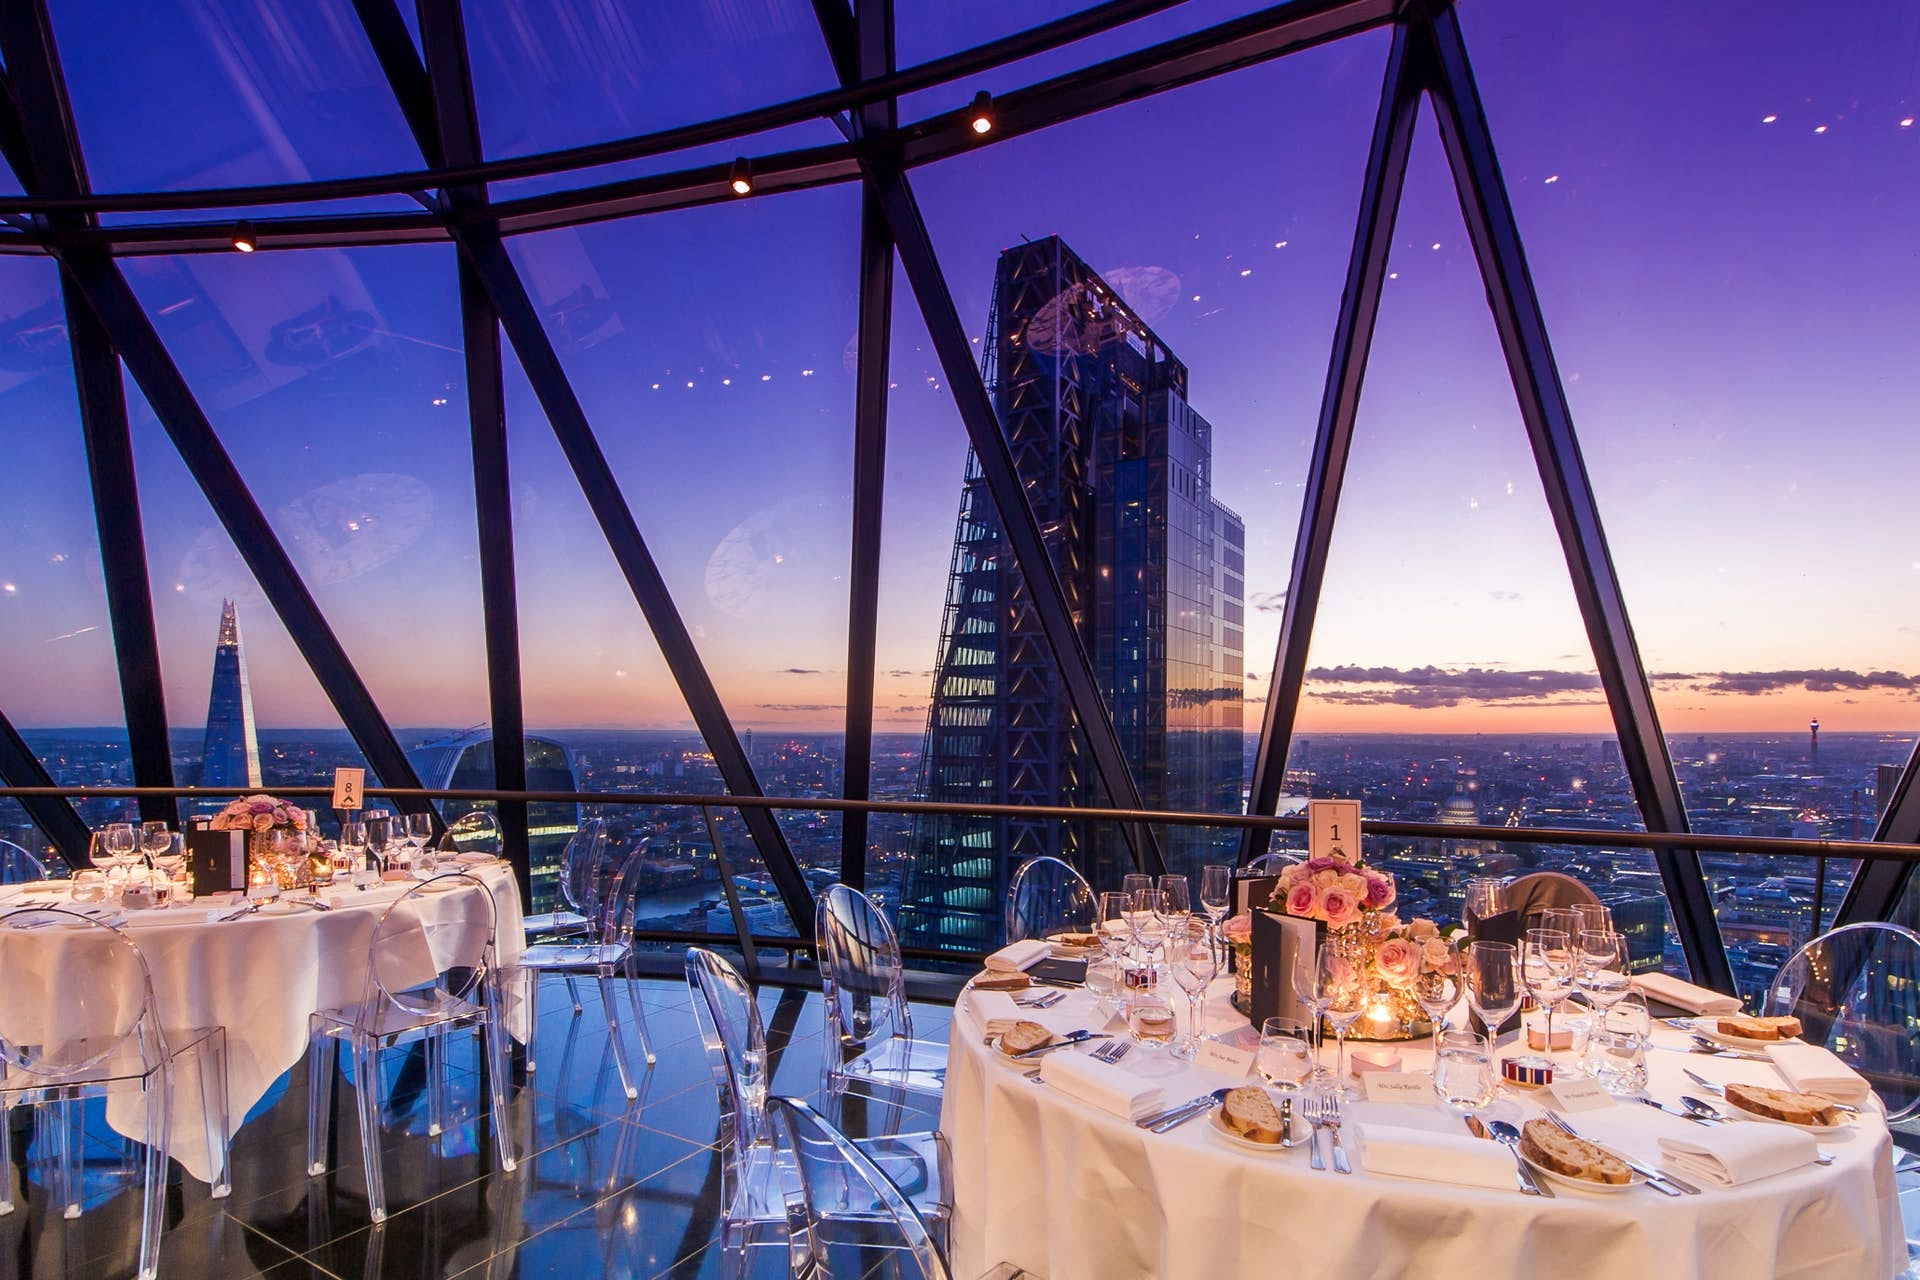 Dining set up at Searcys at The Gherkin